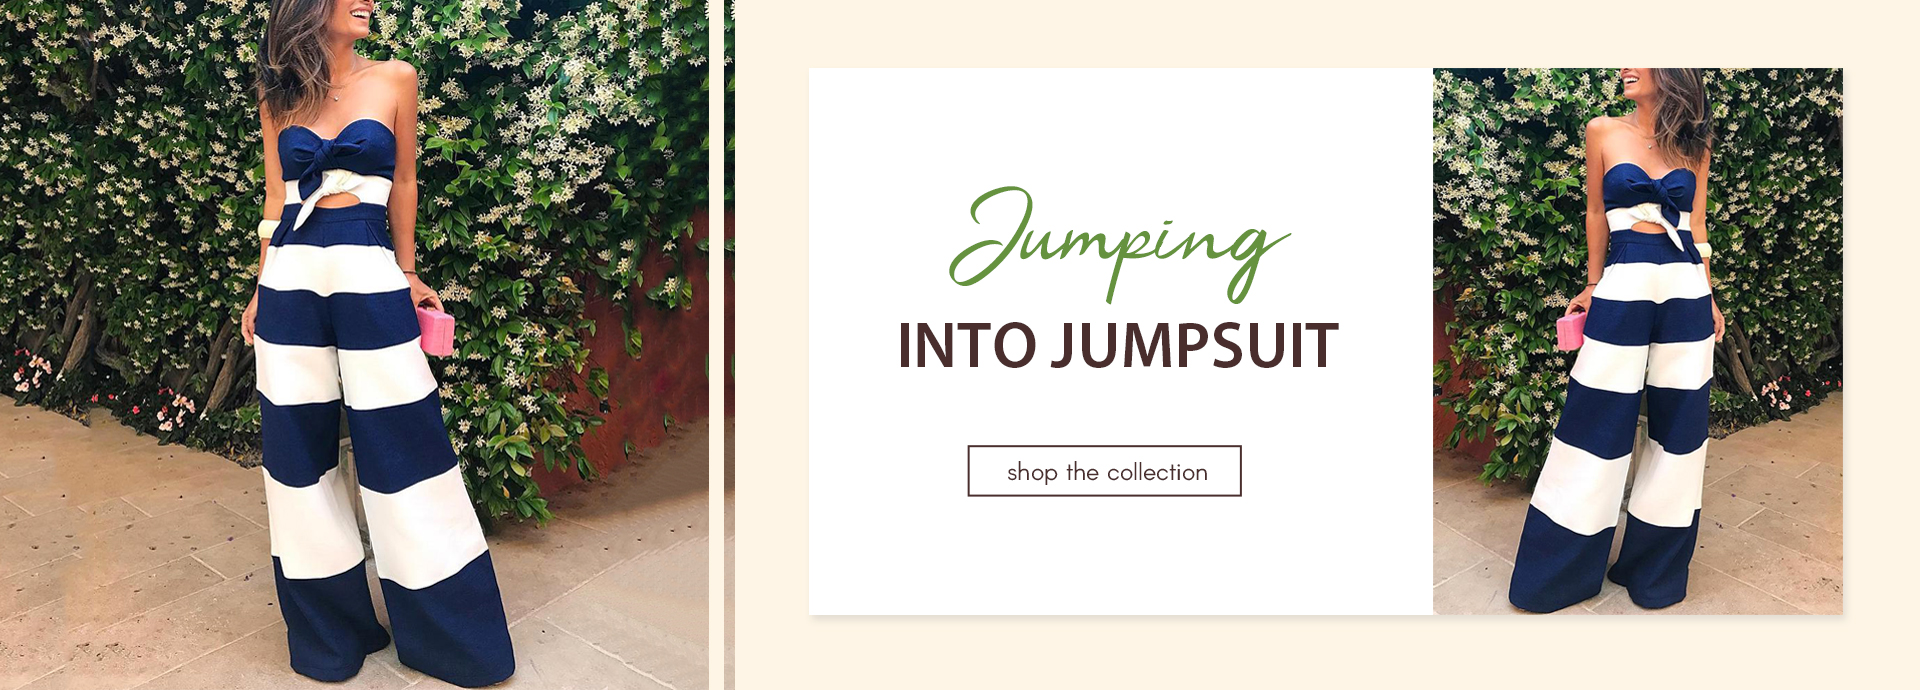 Jumping Into Jumpsuit